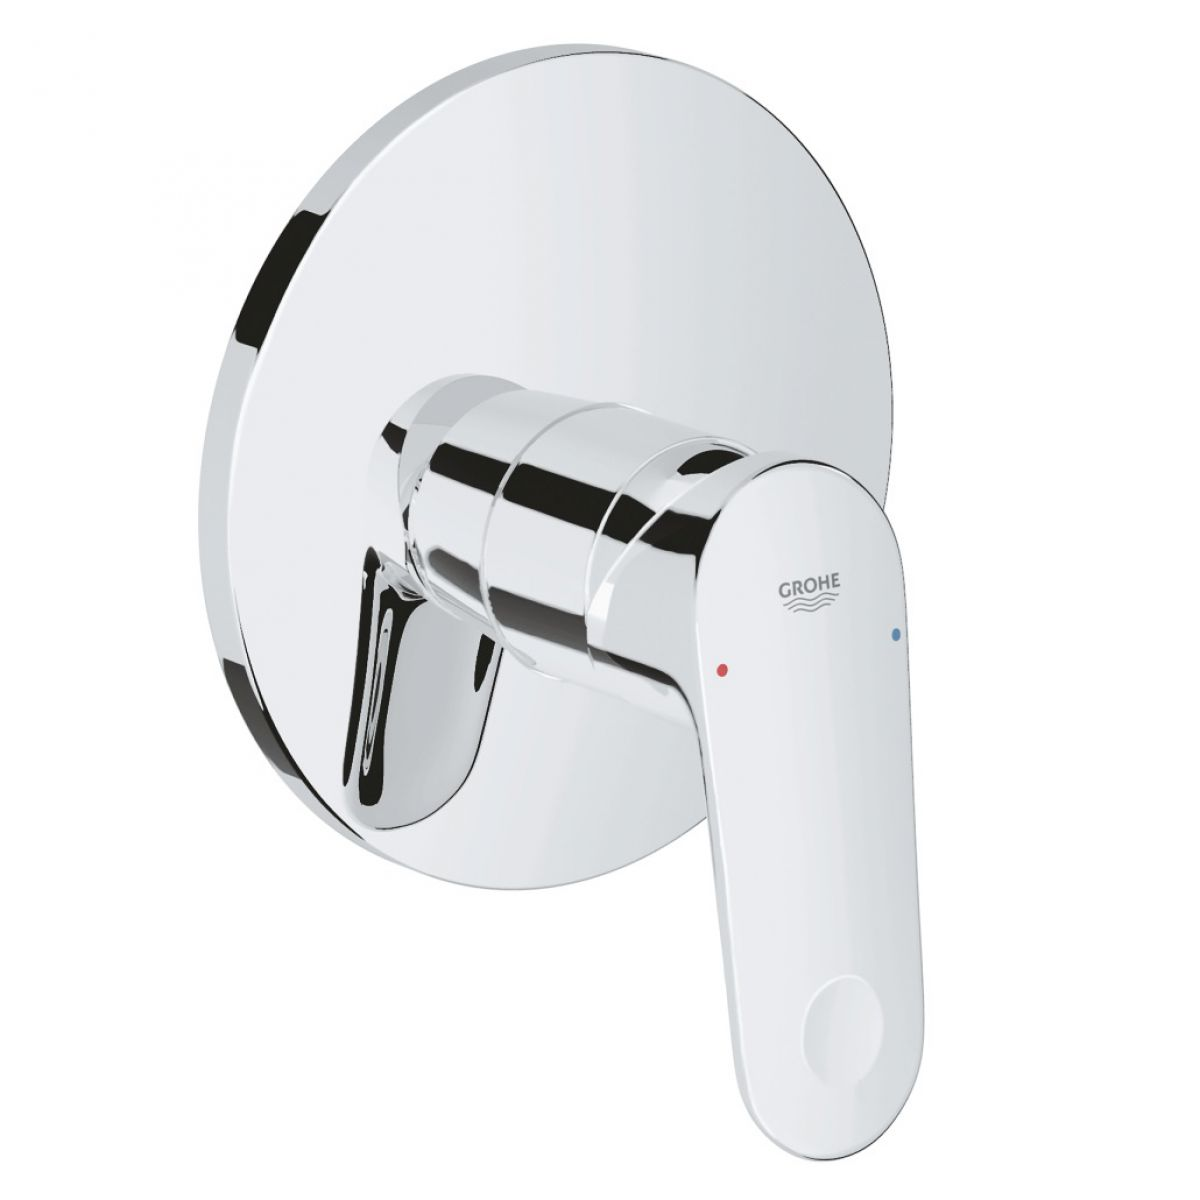 Grohe Europlus Manual Single Lever Shower Mixer : UK Bathrooms